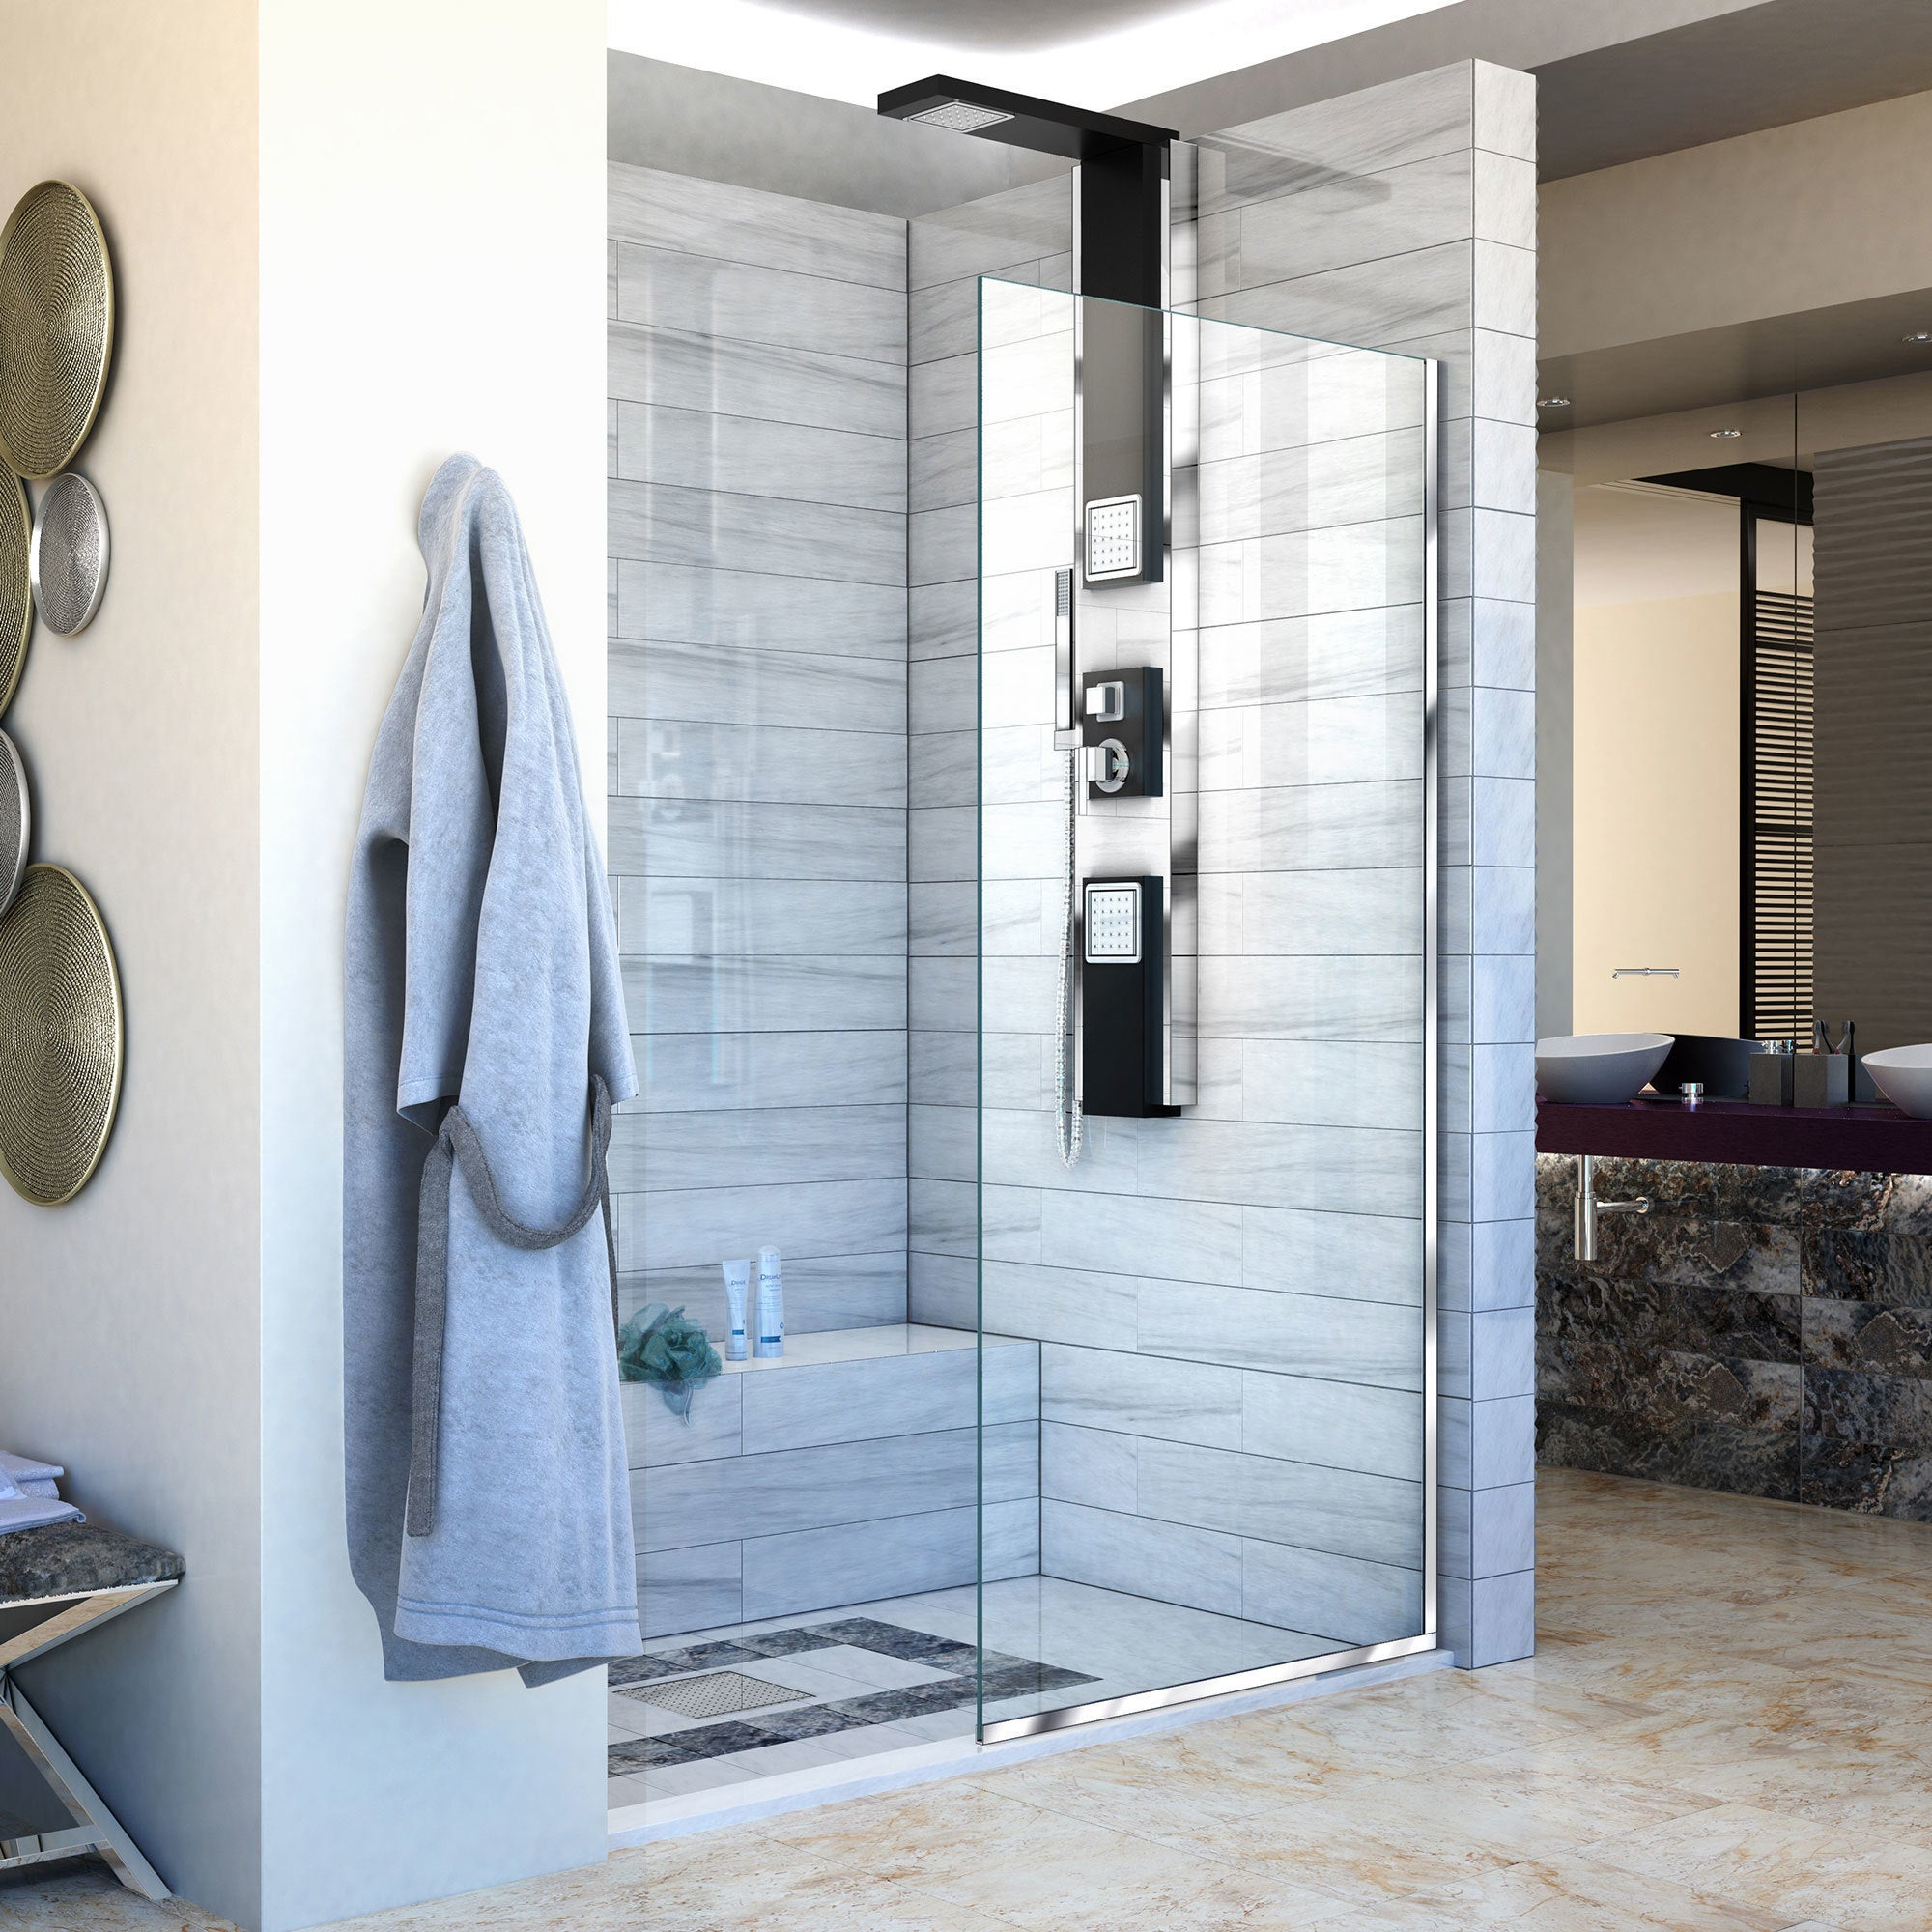 Buy Glass Shower Stalls & Kits Online at Overstock.com | Our Best ...